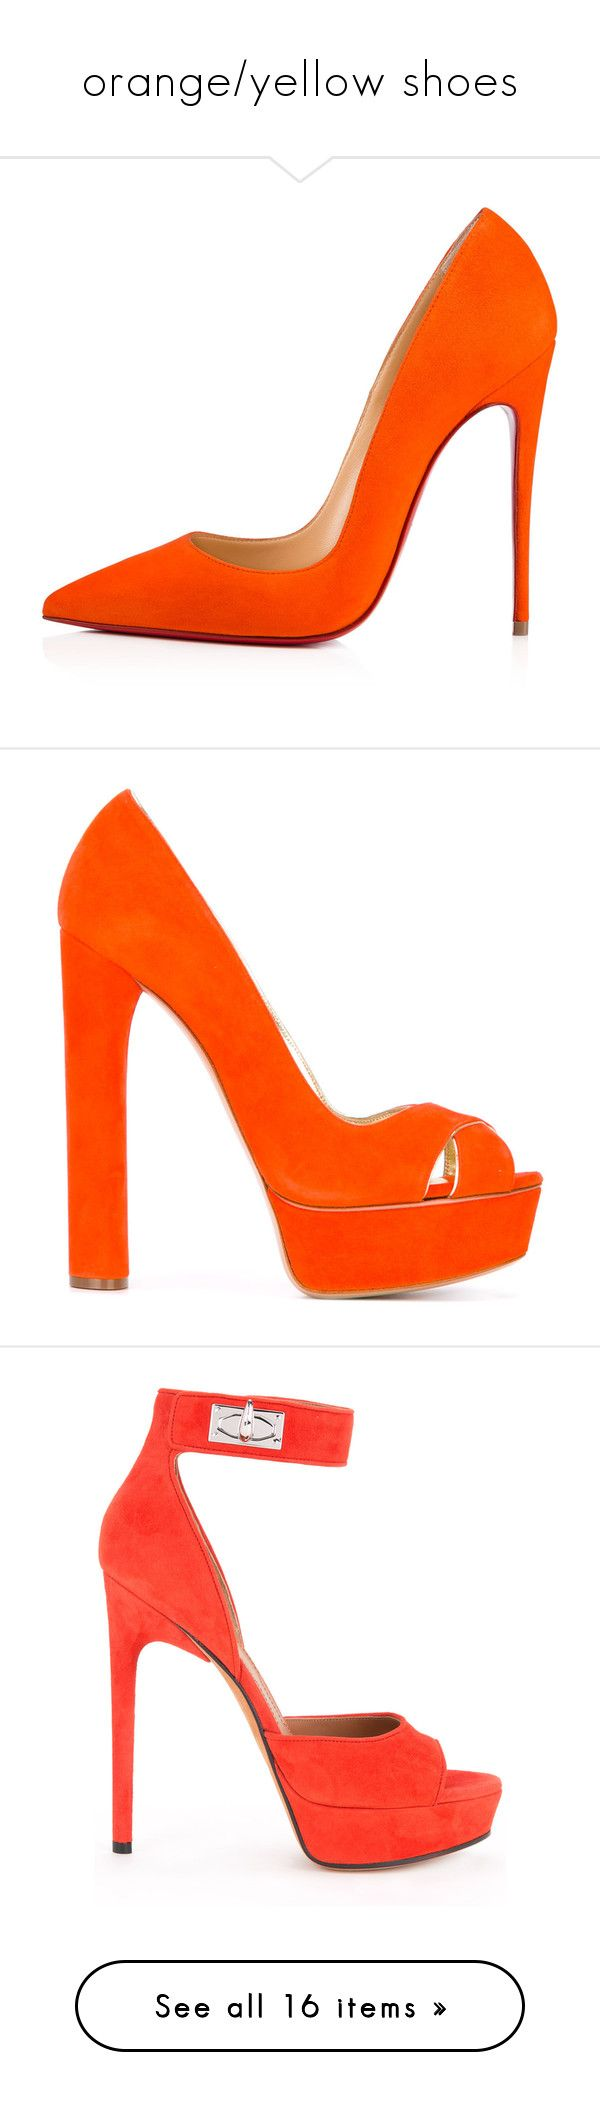 """orange/yellow shoes"" by mrstomlinson974 on Polyvore featuring shoes, heels, christian louboutin shoes, christian louboutin, pumps, platform shoes, orange pumps, leather peep toe pumps, casadei pumps and high heel platform shoes"